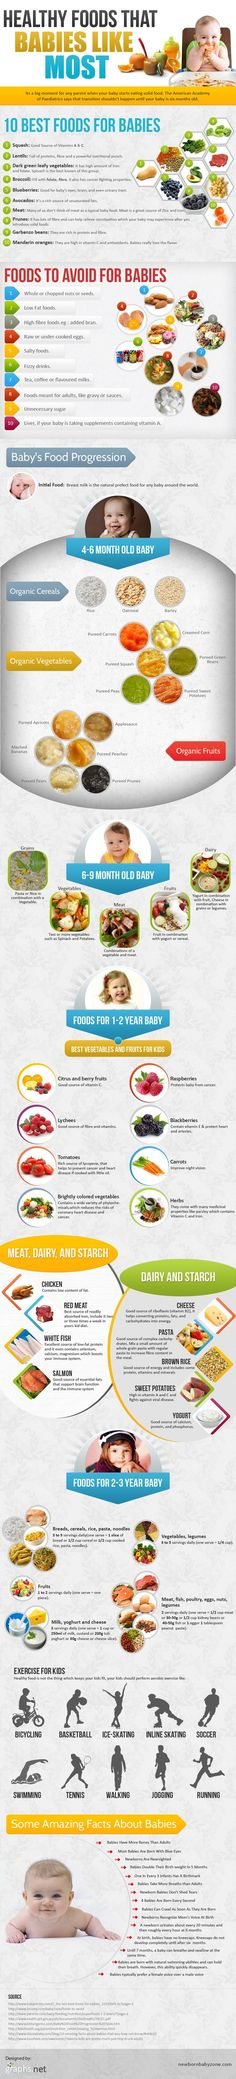 Healthy Foods That Babies Like Most - this is great food for thought for baby's first foods!